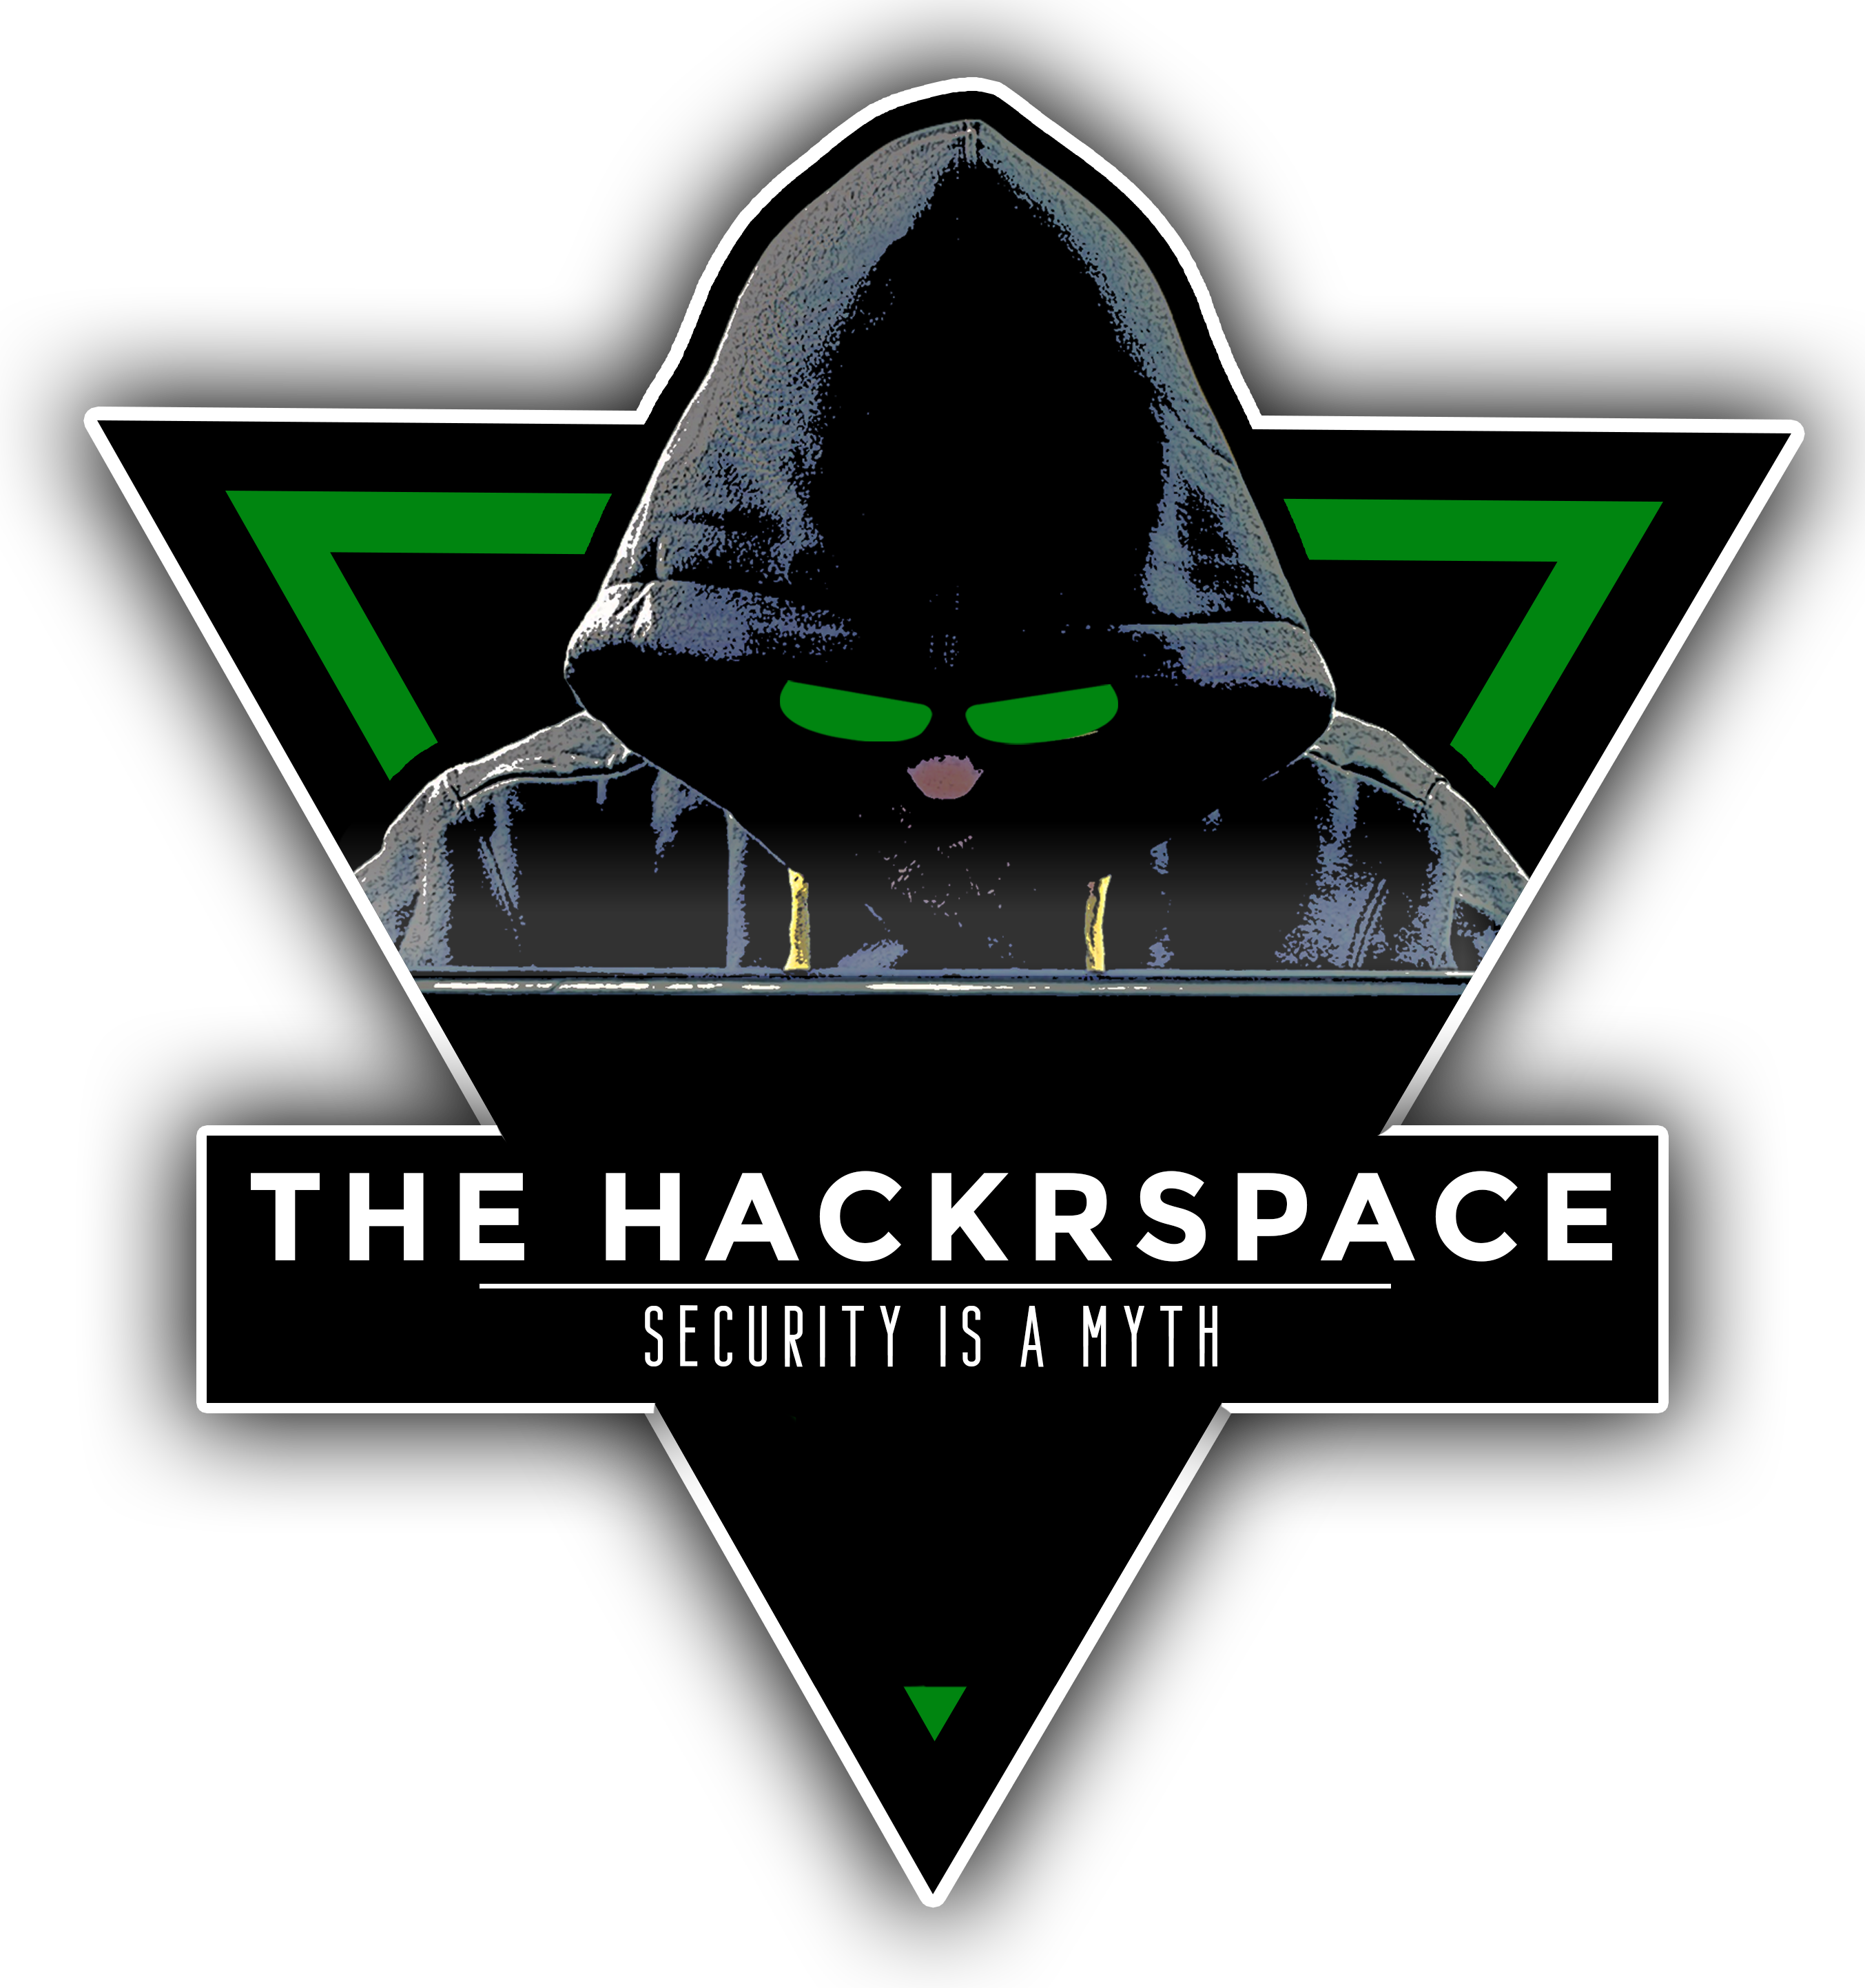 Hack Android devices using MSFVenom | The HackrSpace